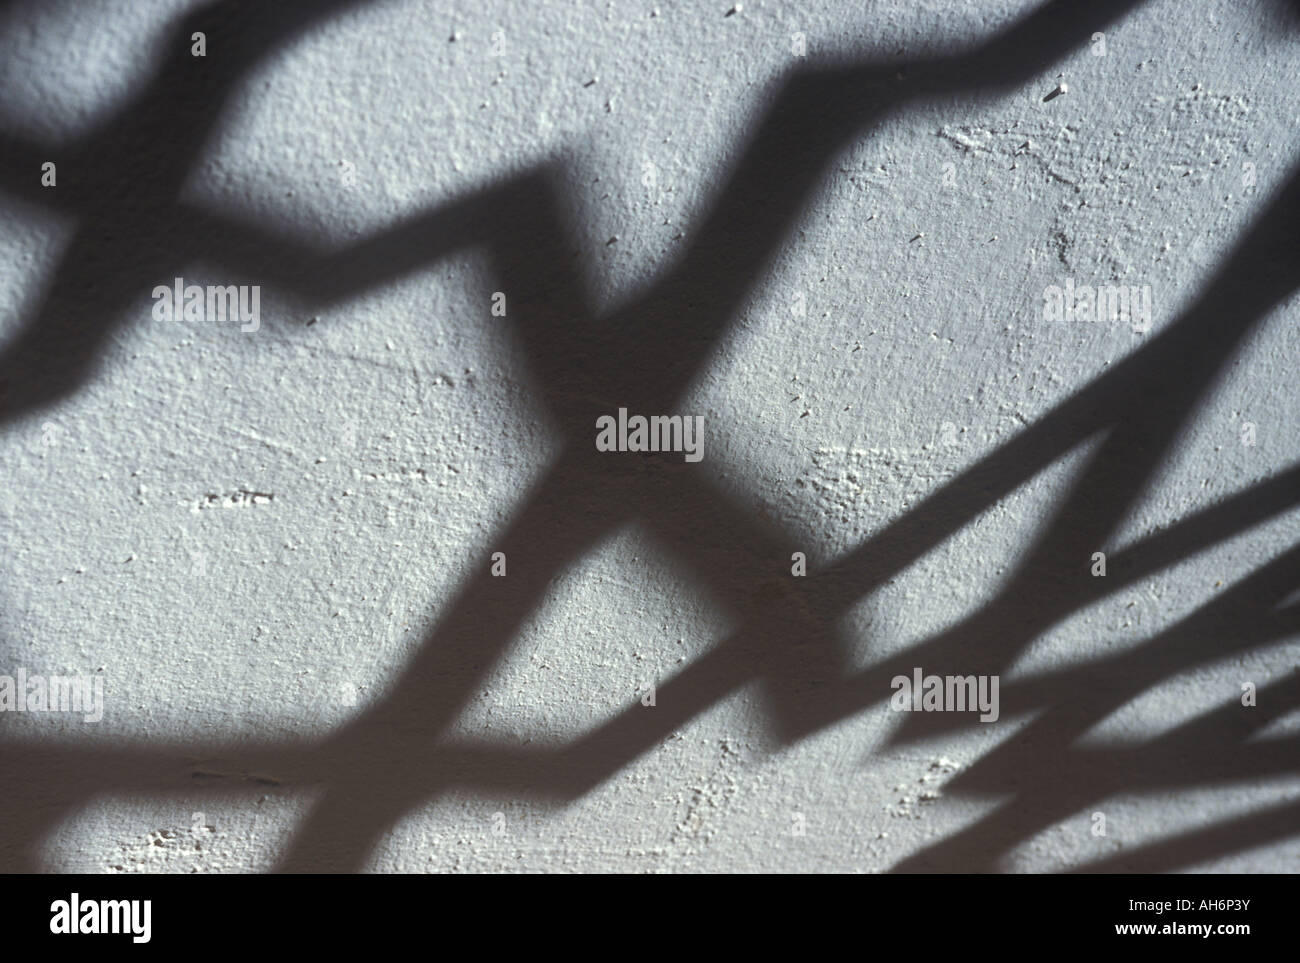 Arabesque shadows on a whitewashed wall, Andalusia - Stock Image